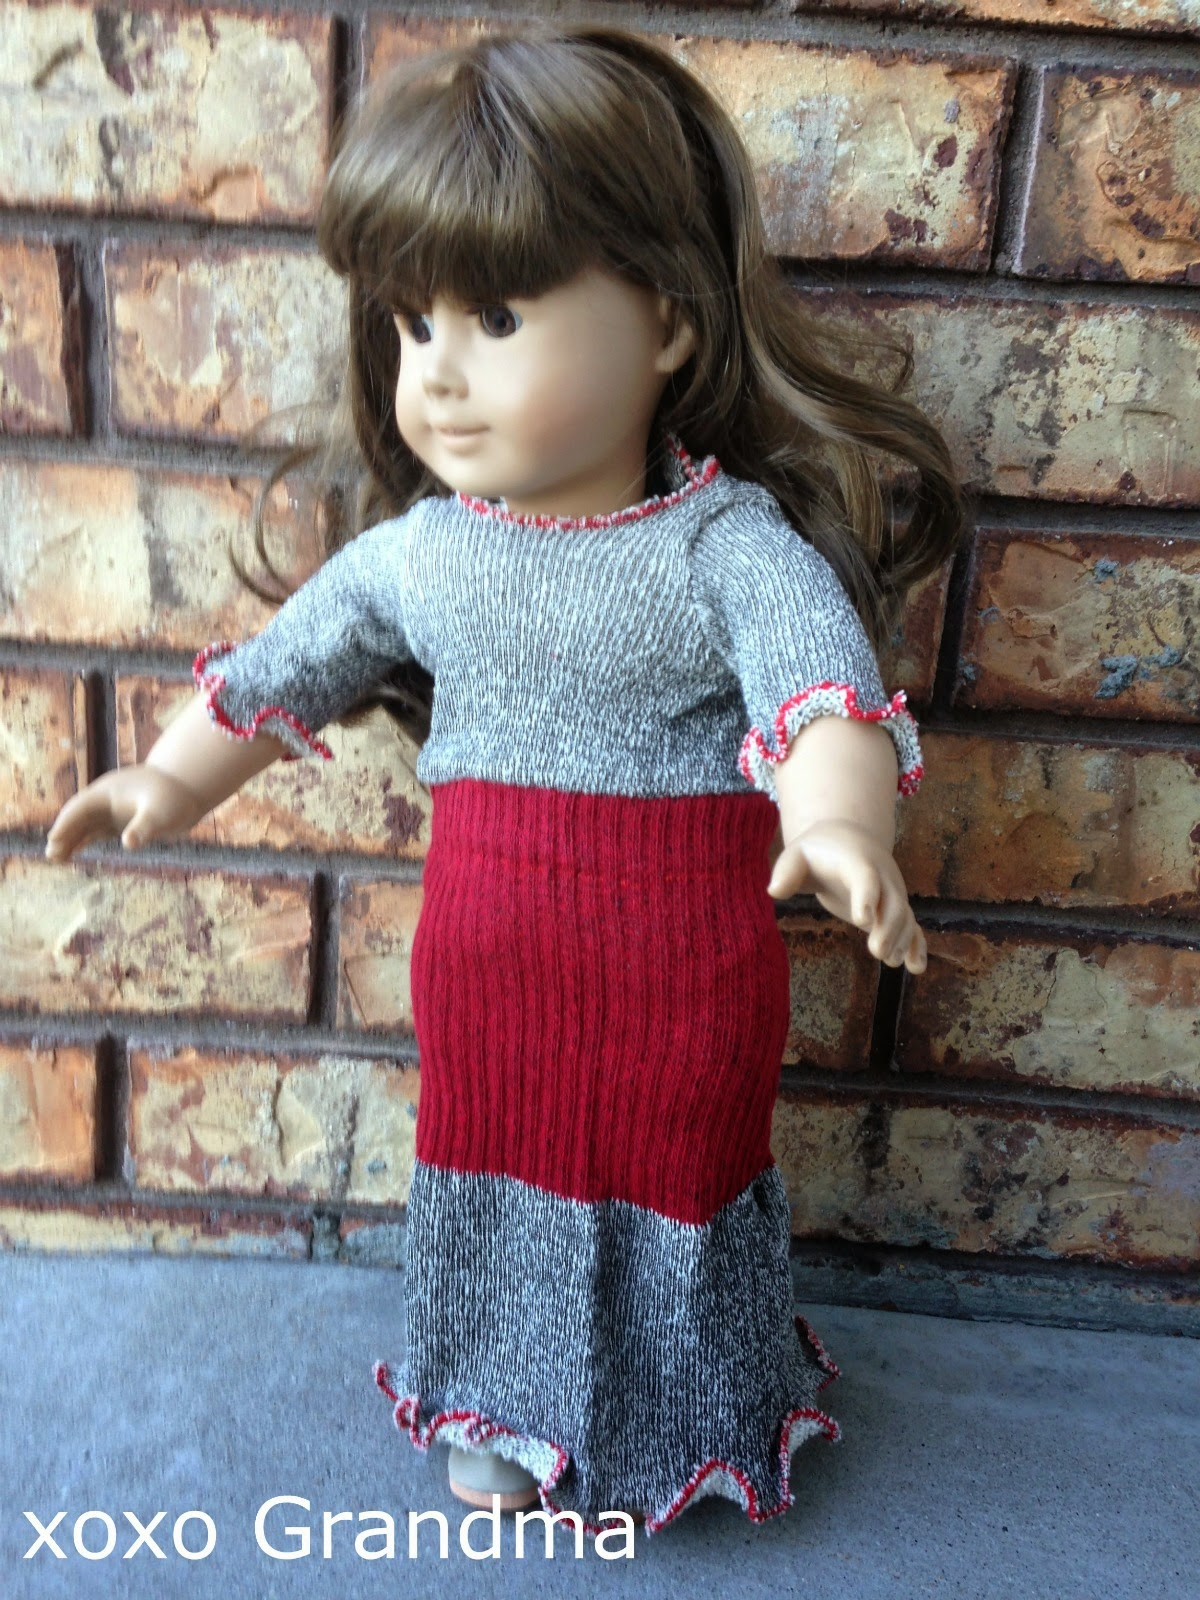 http://xoxograndma.blogspot.com/2014/12/dollar-store-purchase-doll-sweater.html